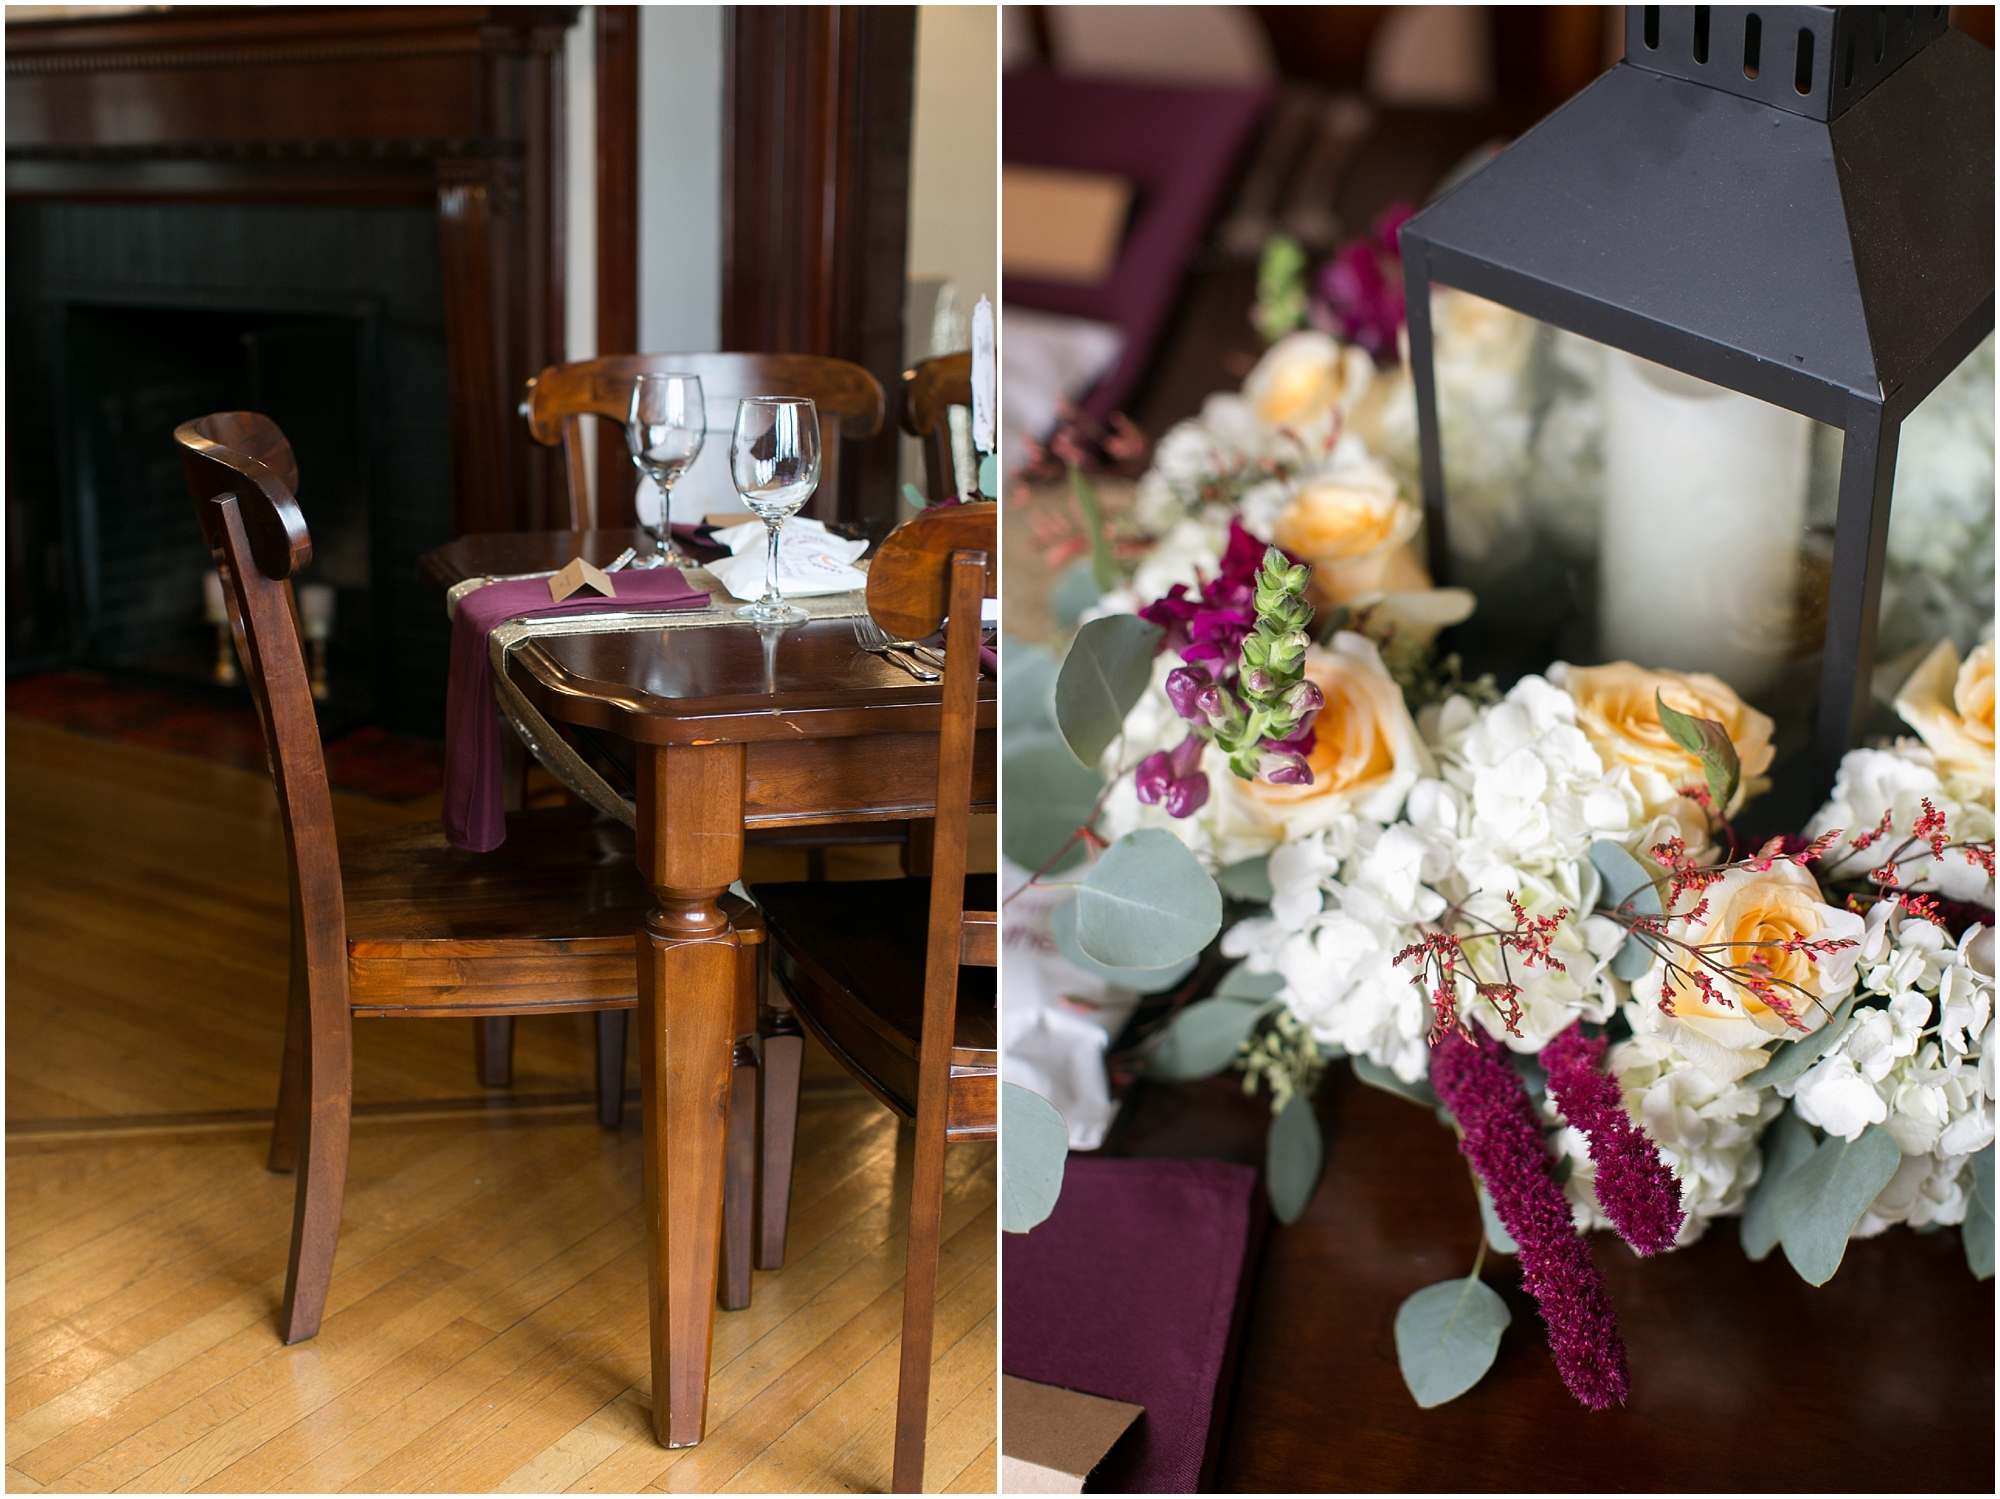 gourmet gang, fall wedding flowers, obici house wedding in suffolk virginia, virginia wedding photographer